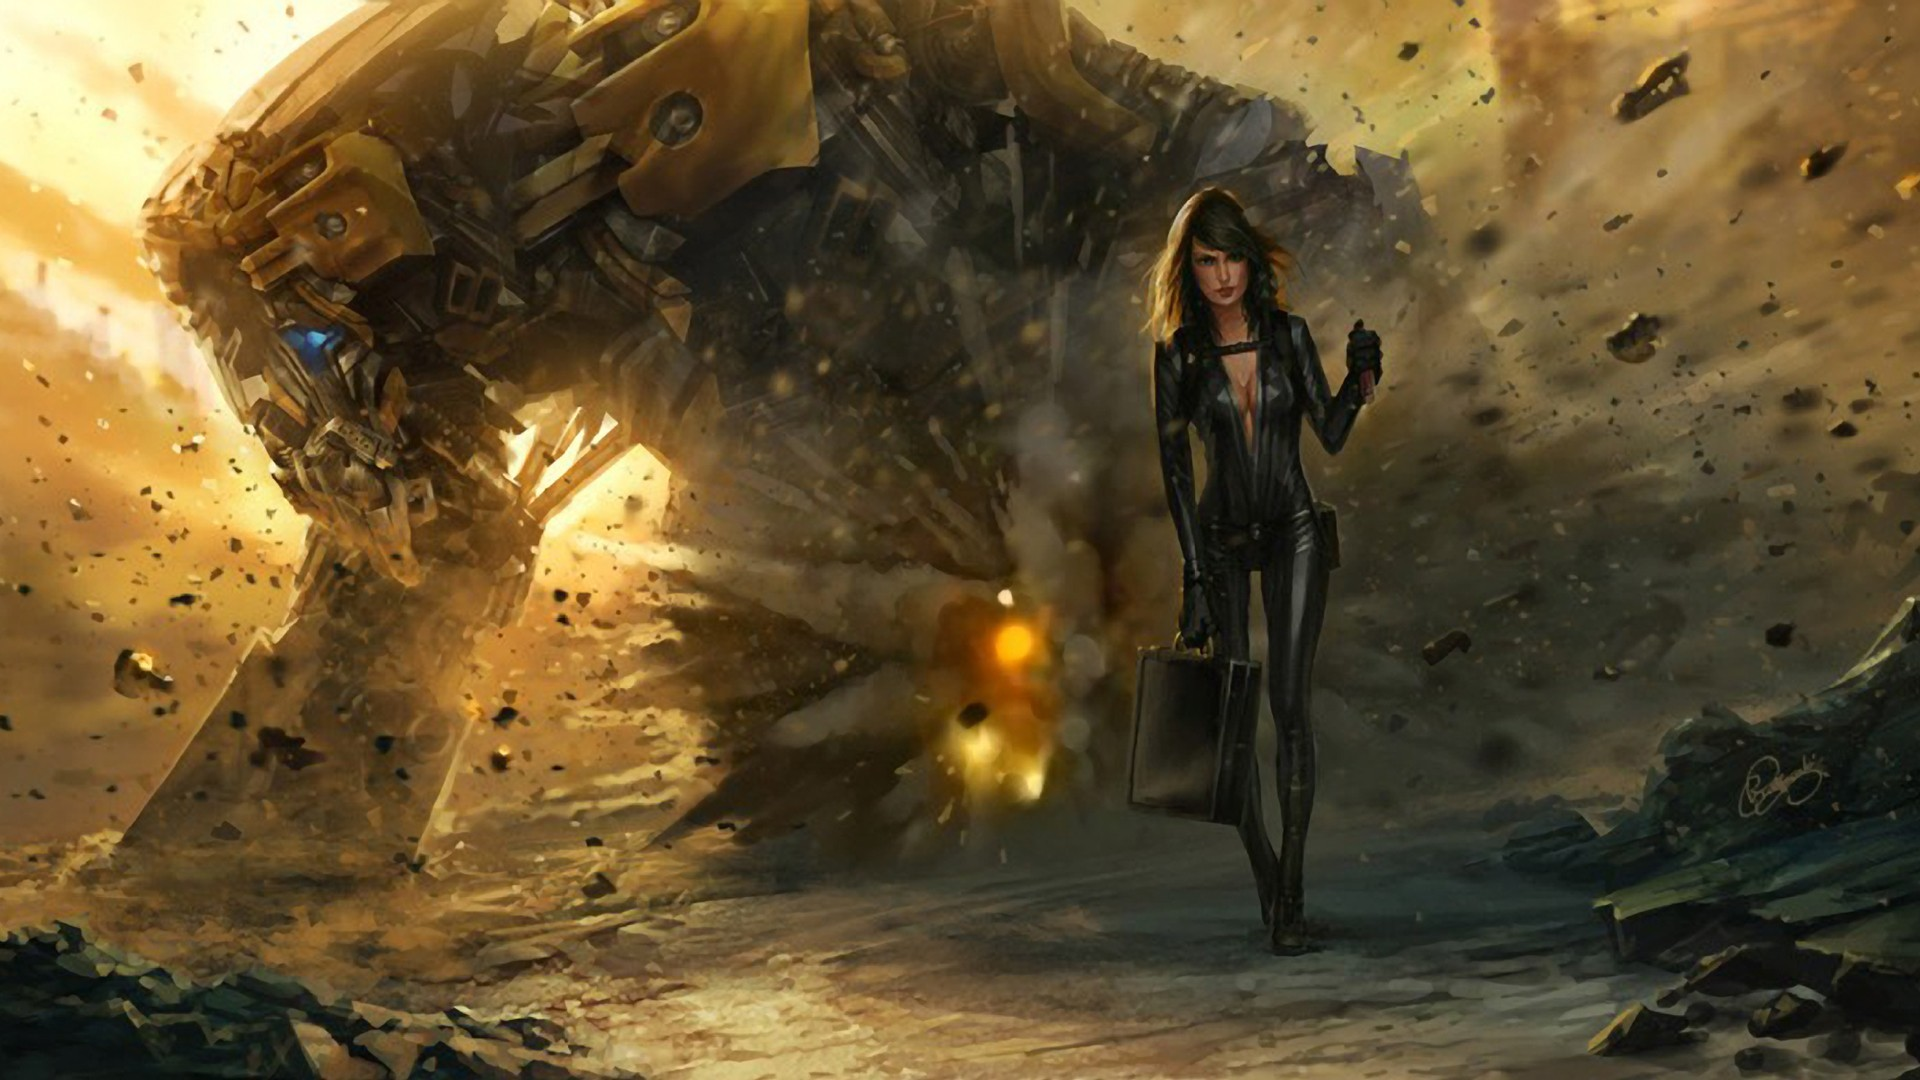 leather woman fantasy Landscapes HD Wallpaper